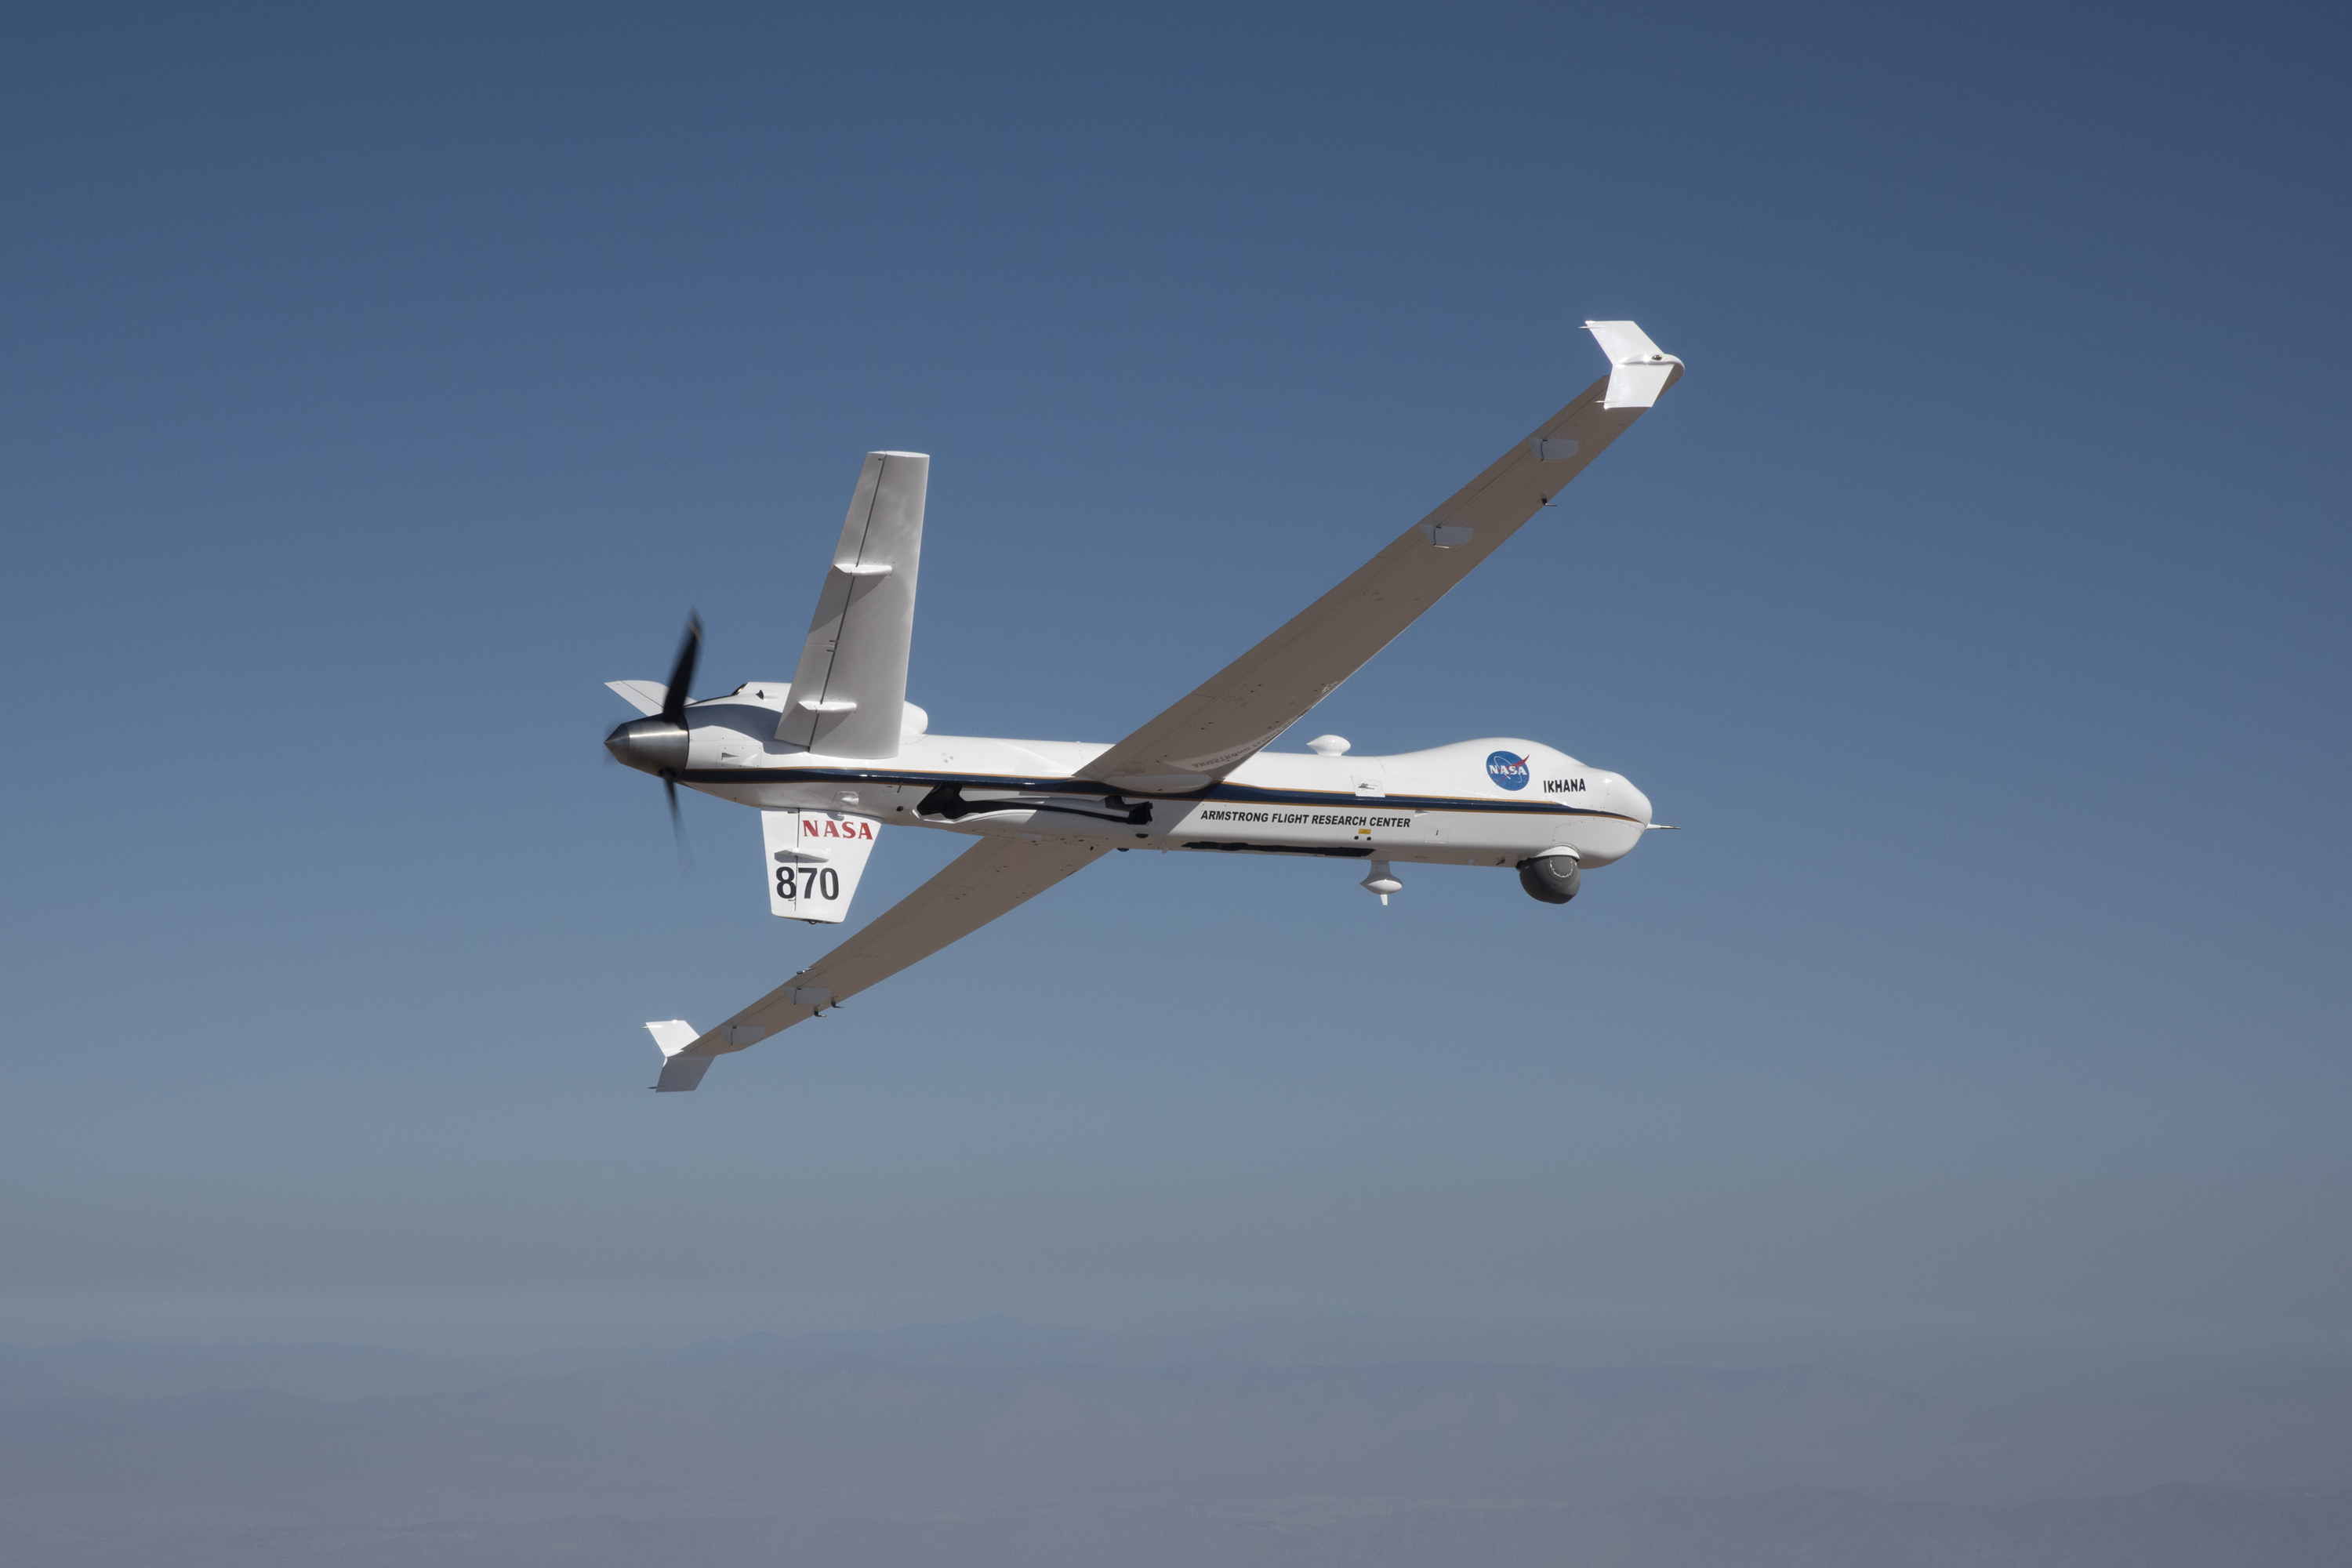 photo image NASA's unmanned drone had its first solo flight in public airspace